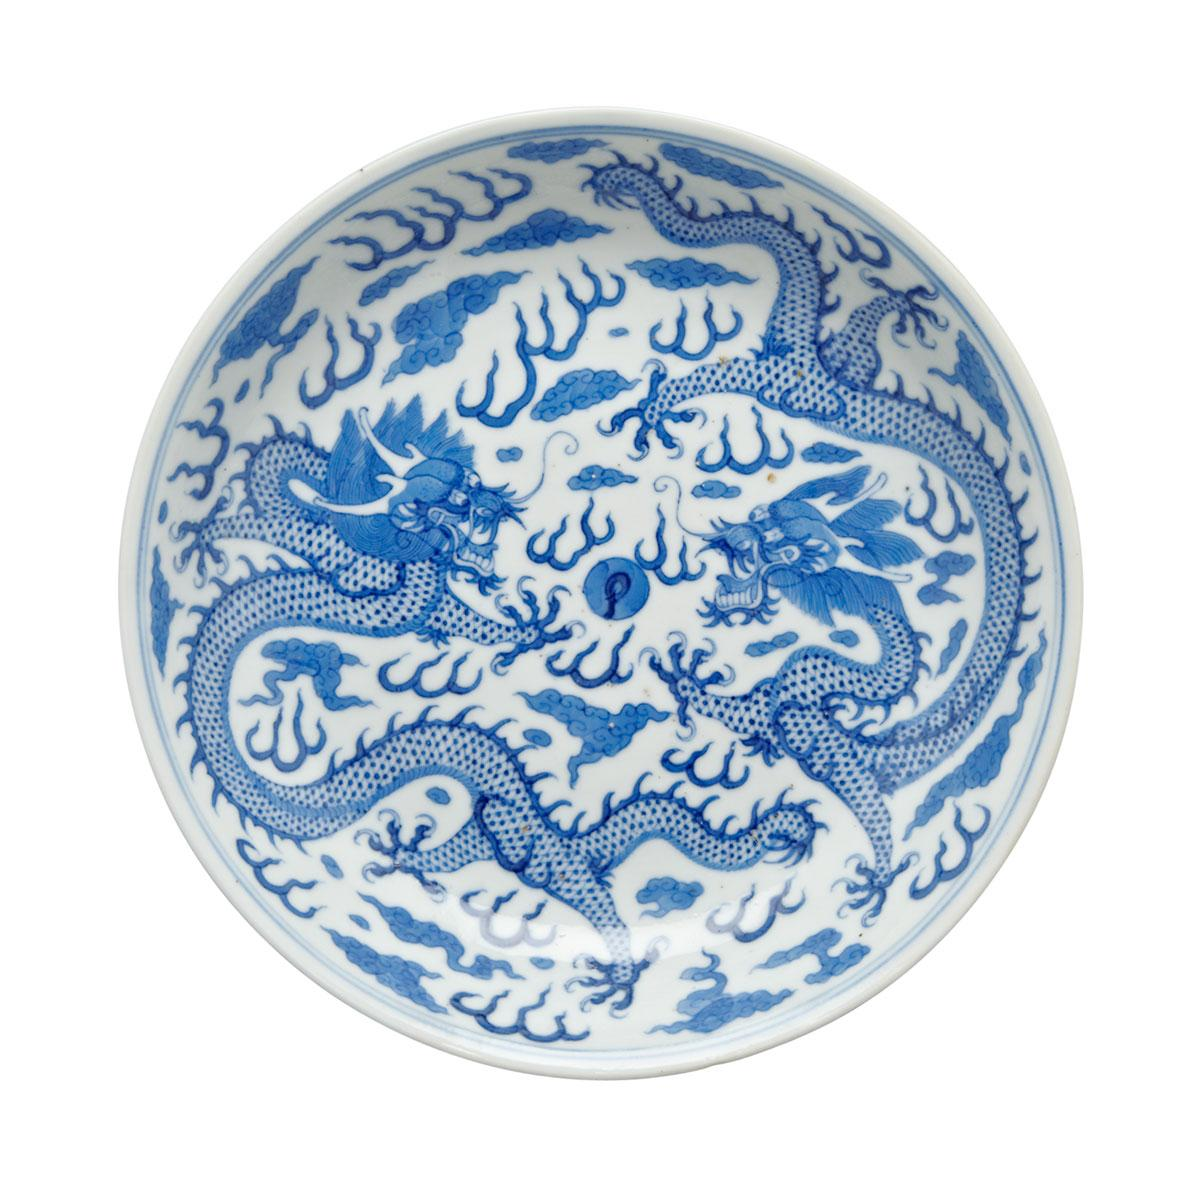 Blue and White Dragon Dish, Guangxu Mark and Period (1875-1908)